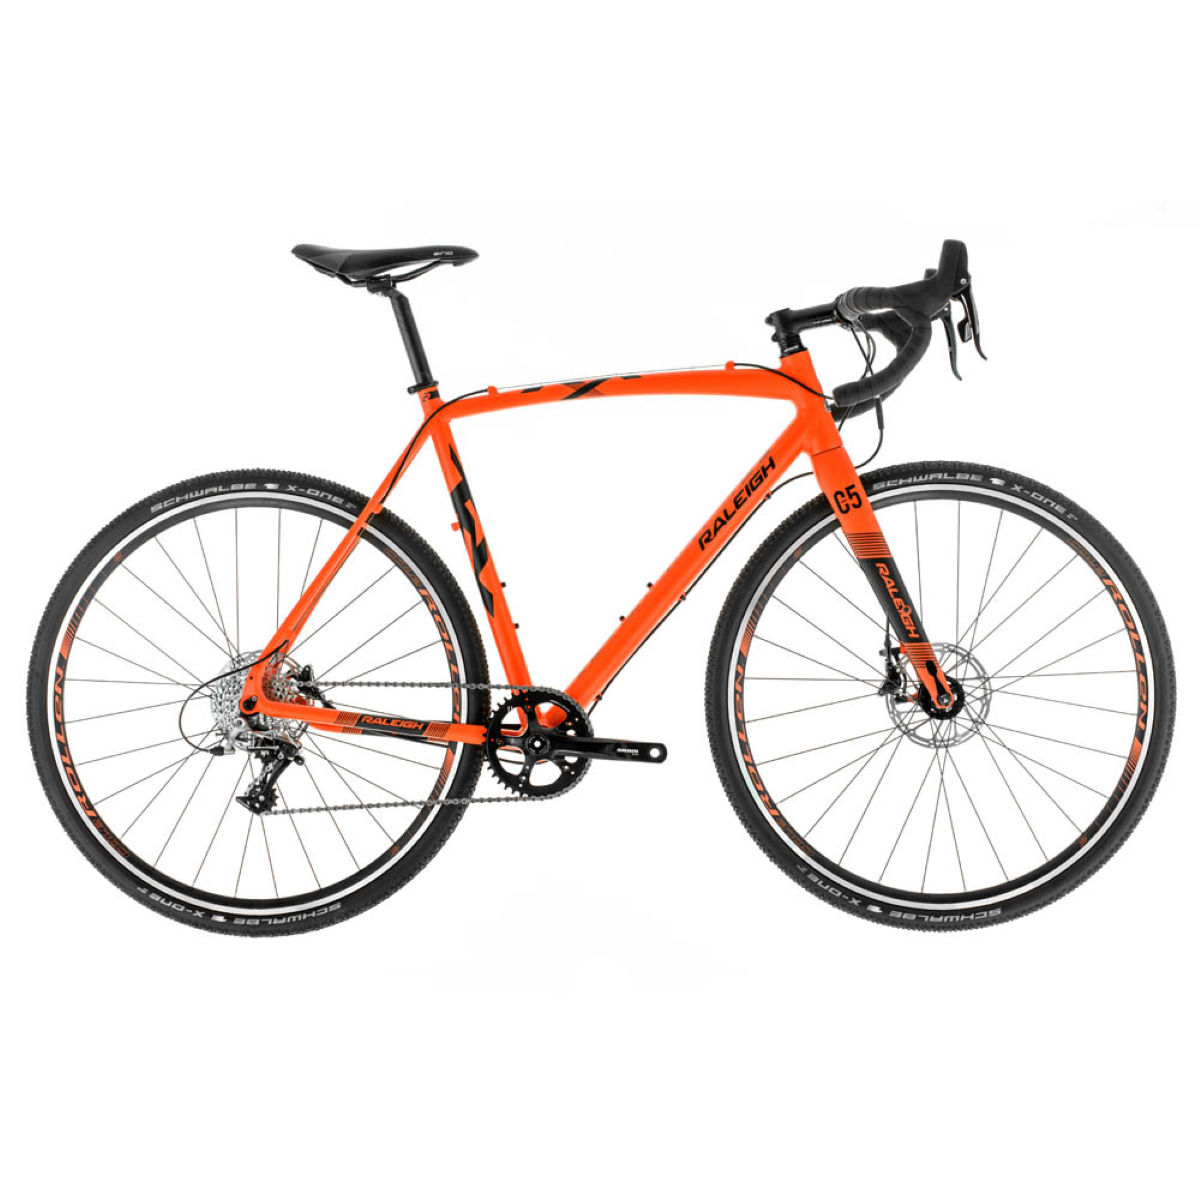 Raleigh RX Pro 1x (2016) Cyclocross Bike